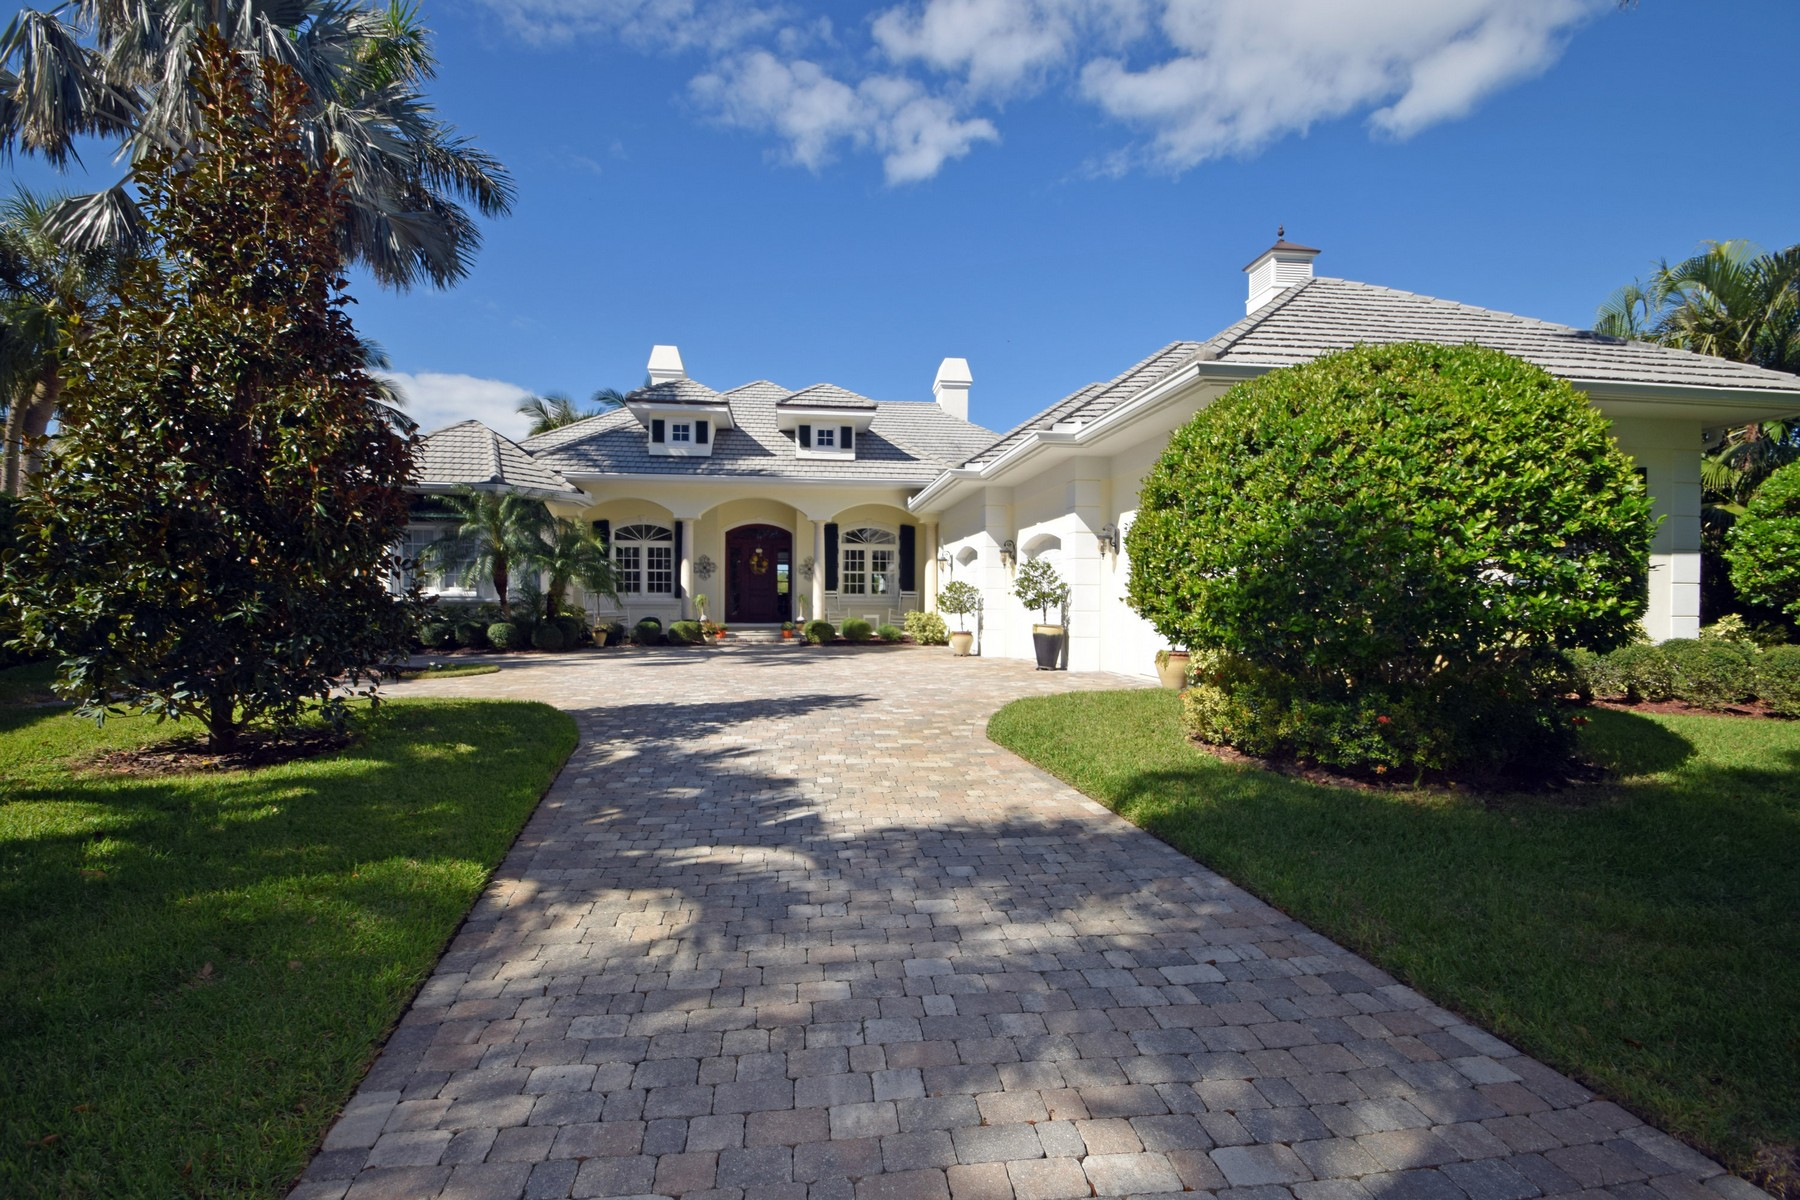 Single Family Home for Sale at Exquisite Riverfront Pool Home 1371 Indian Mound Trail Vero Beach, Florida 32963 United States